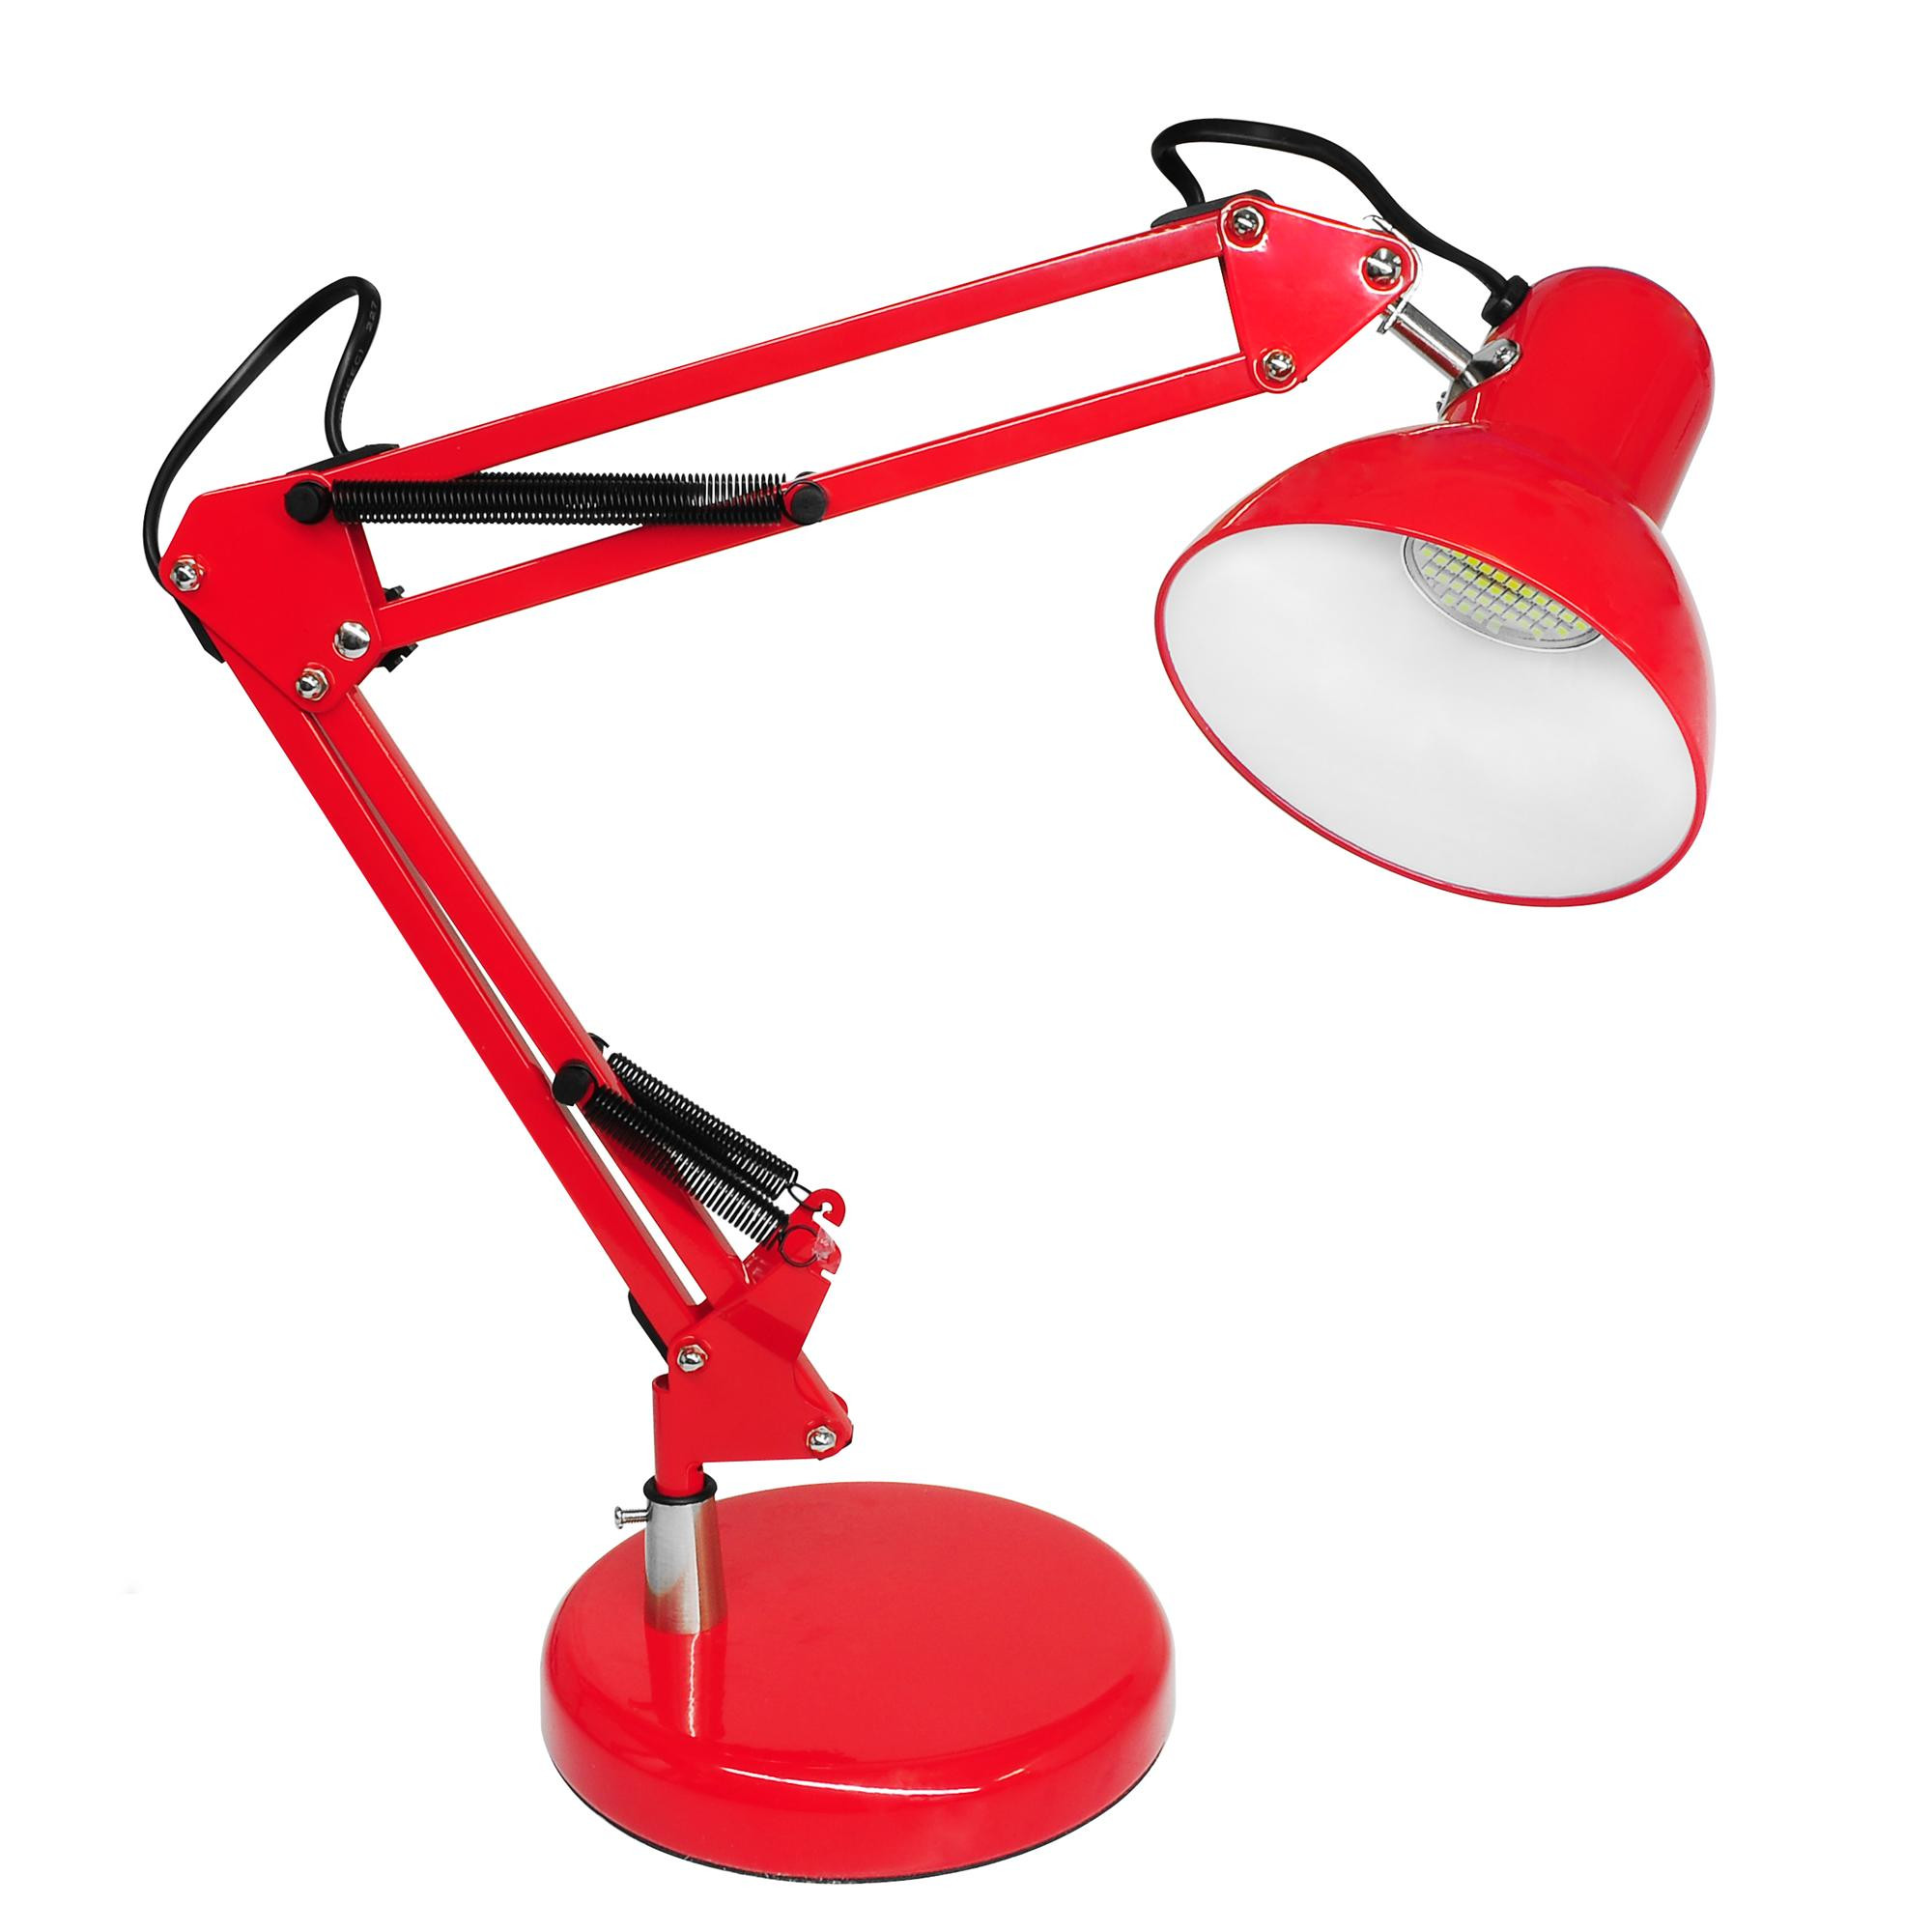 Best ideas about Red Desk Lamp . Save or Pin Angle Desk Lamp & LED GU10 240V Red 5W Now.